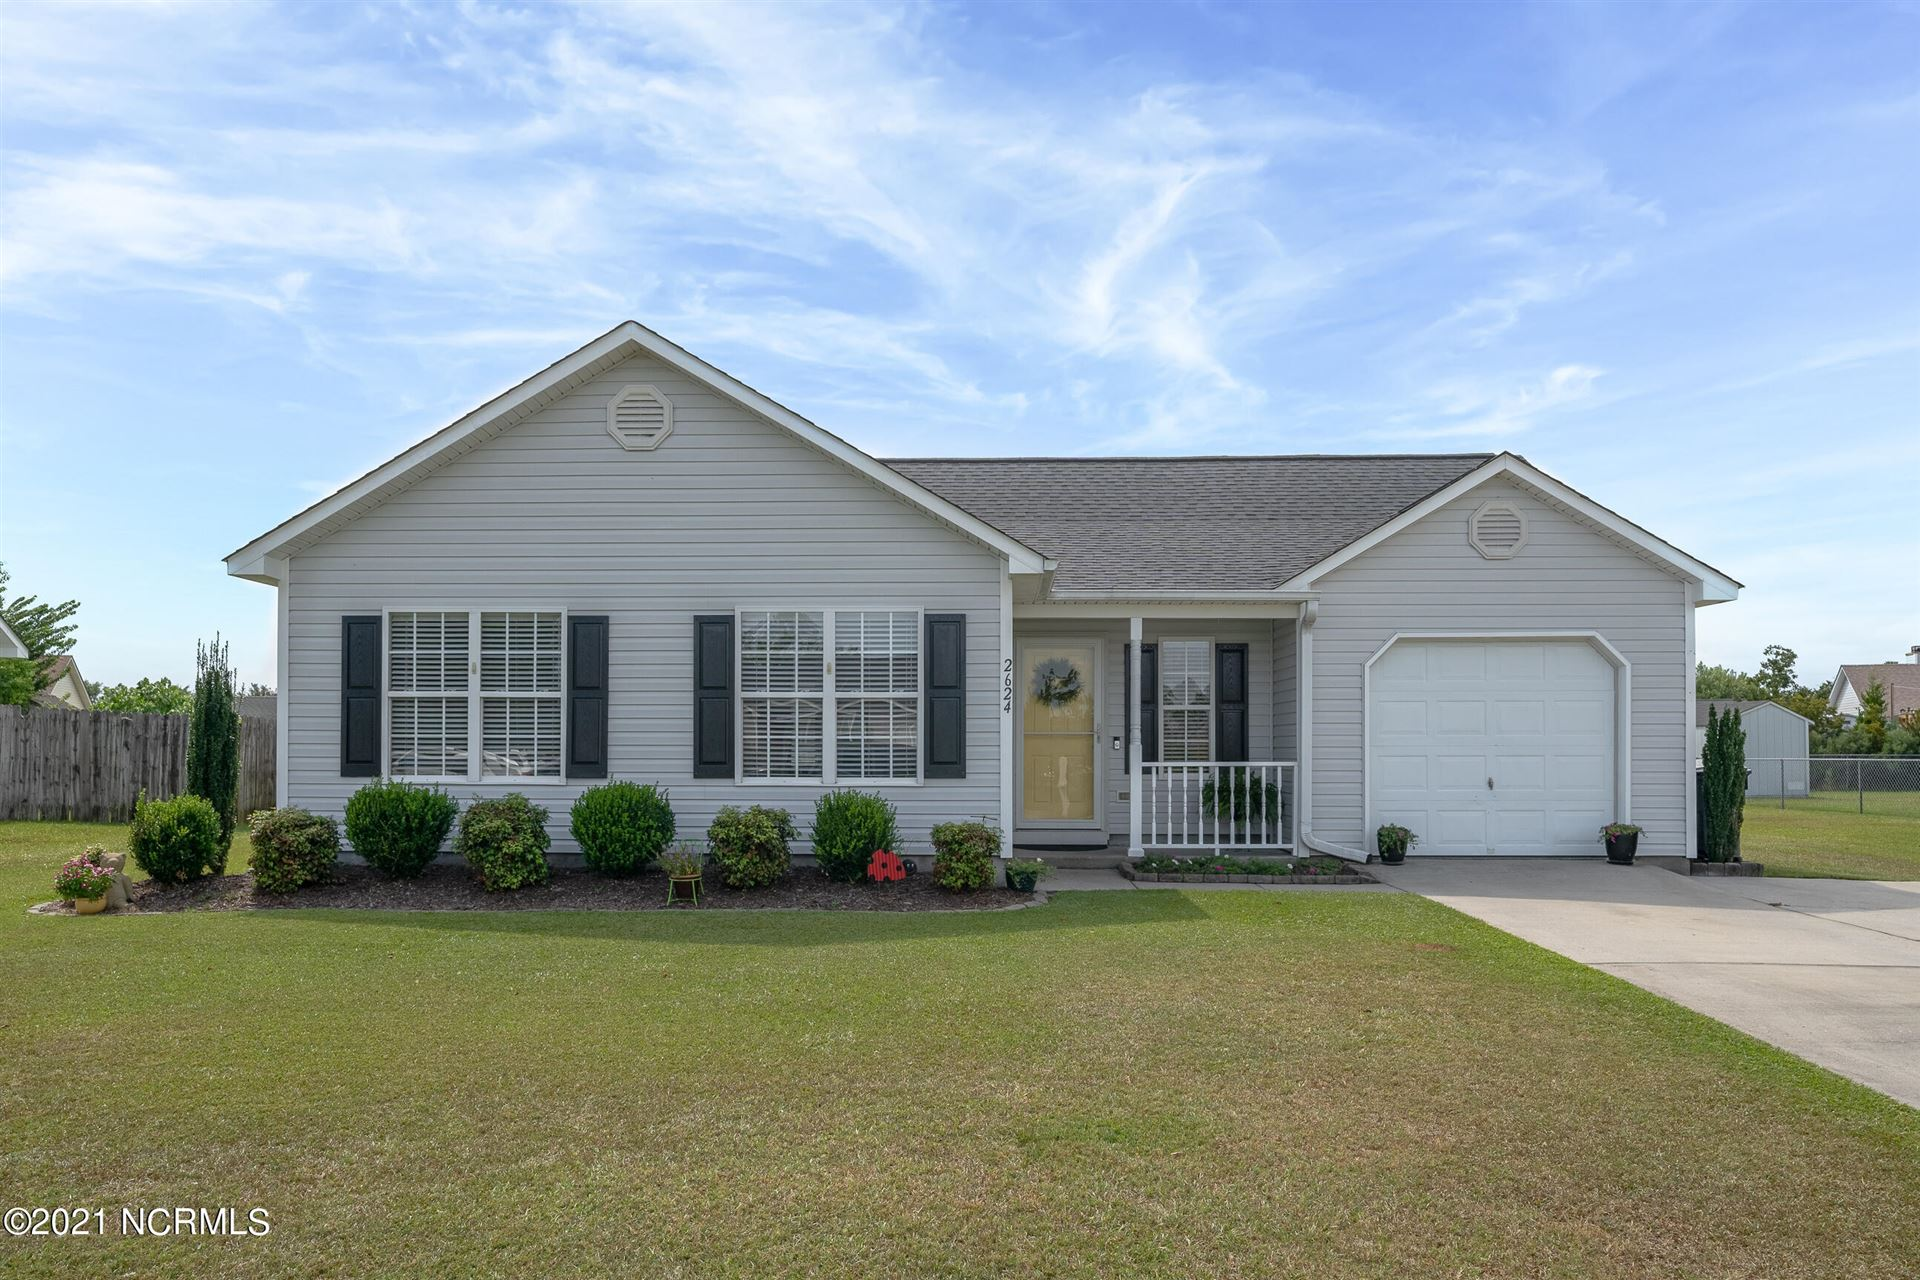 Photo of 2624 Ashby Drive, Wilmington, NC 28411 (MLS # 100291840)